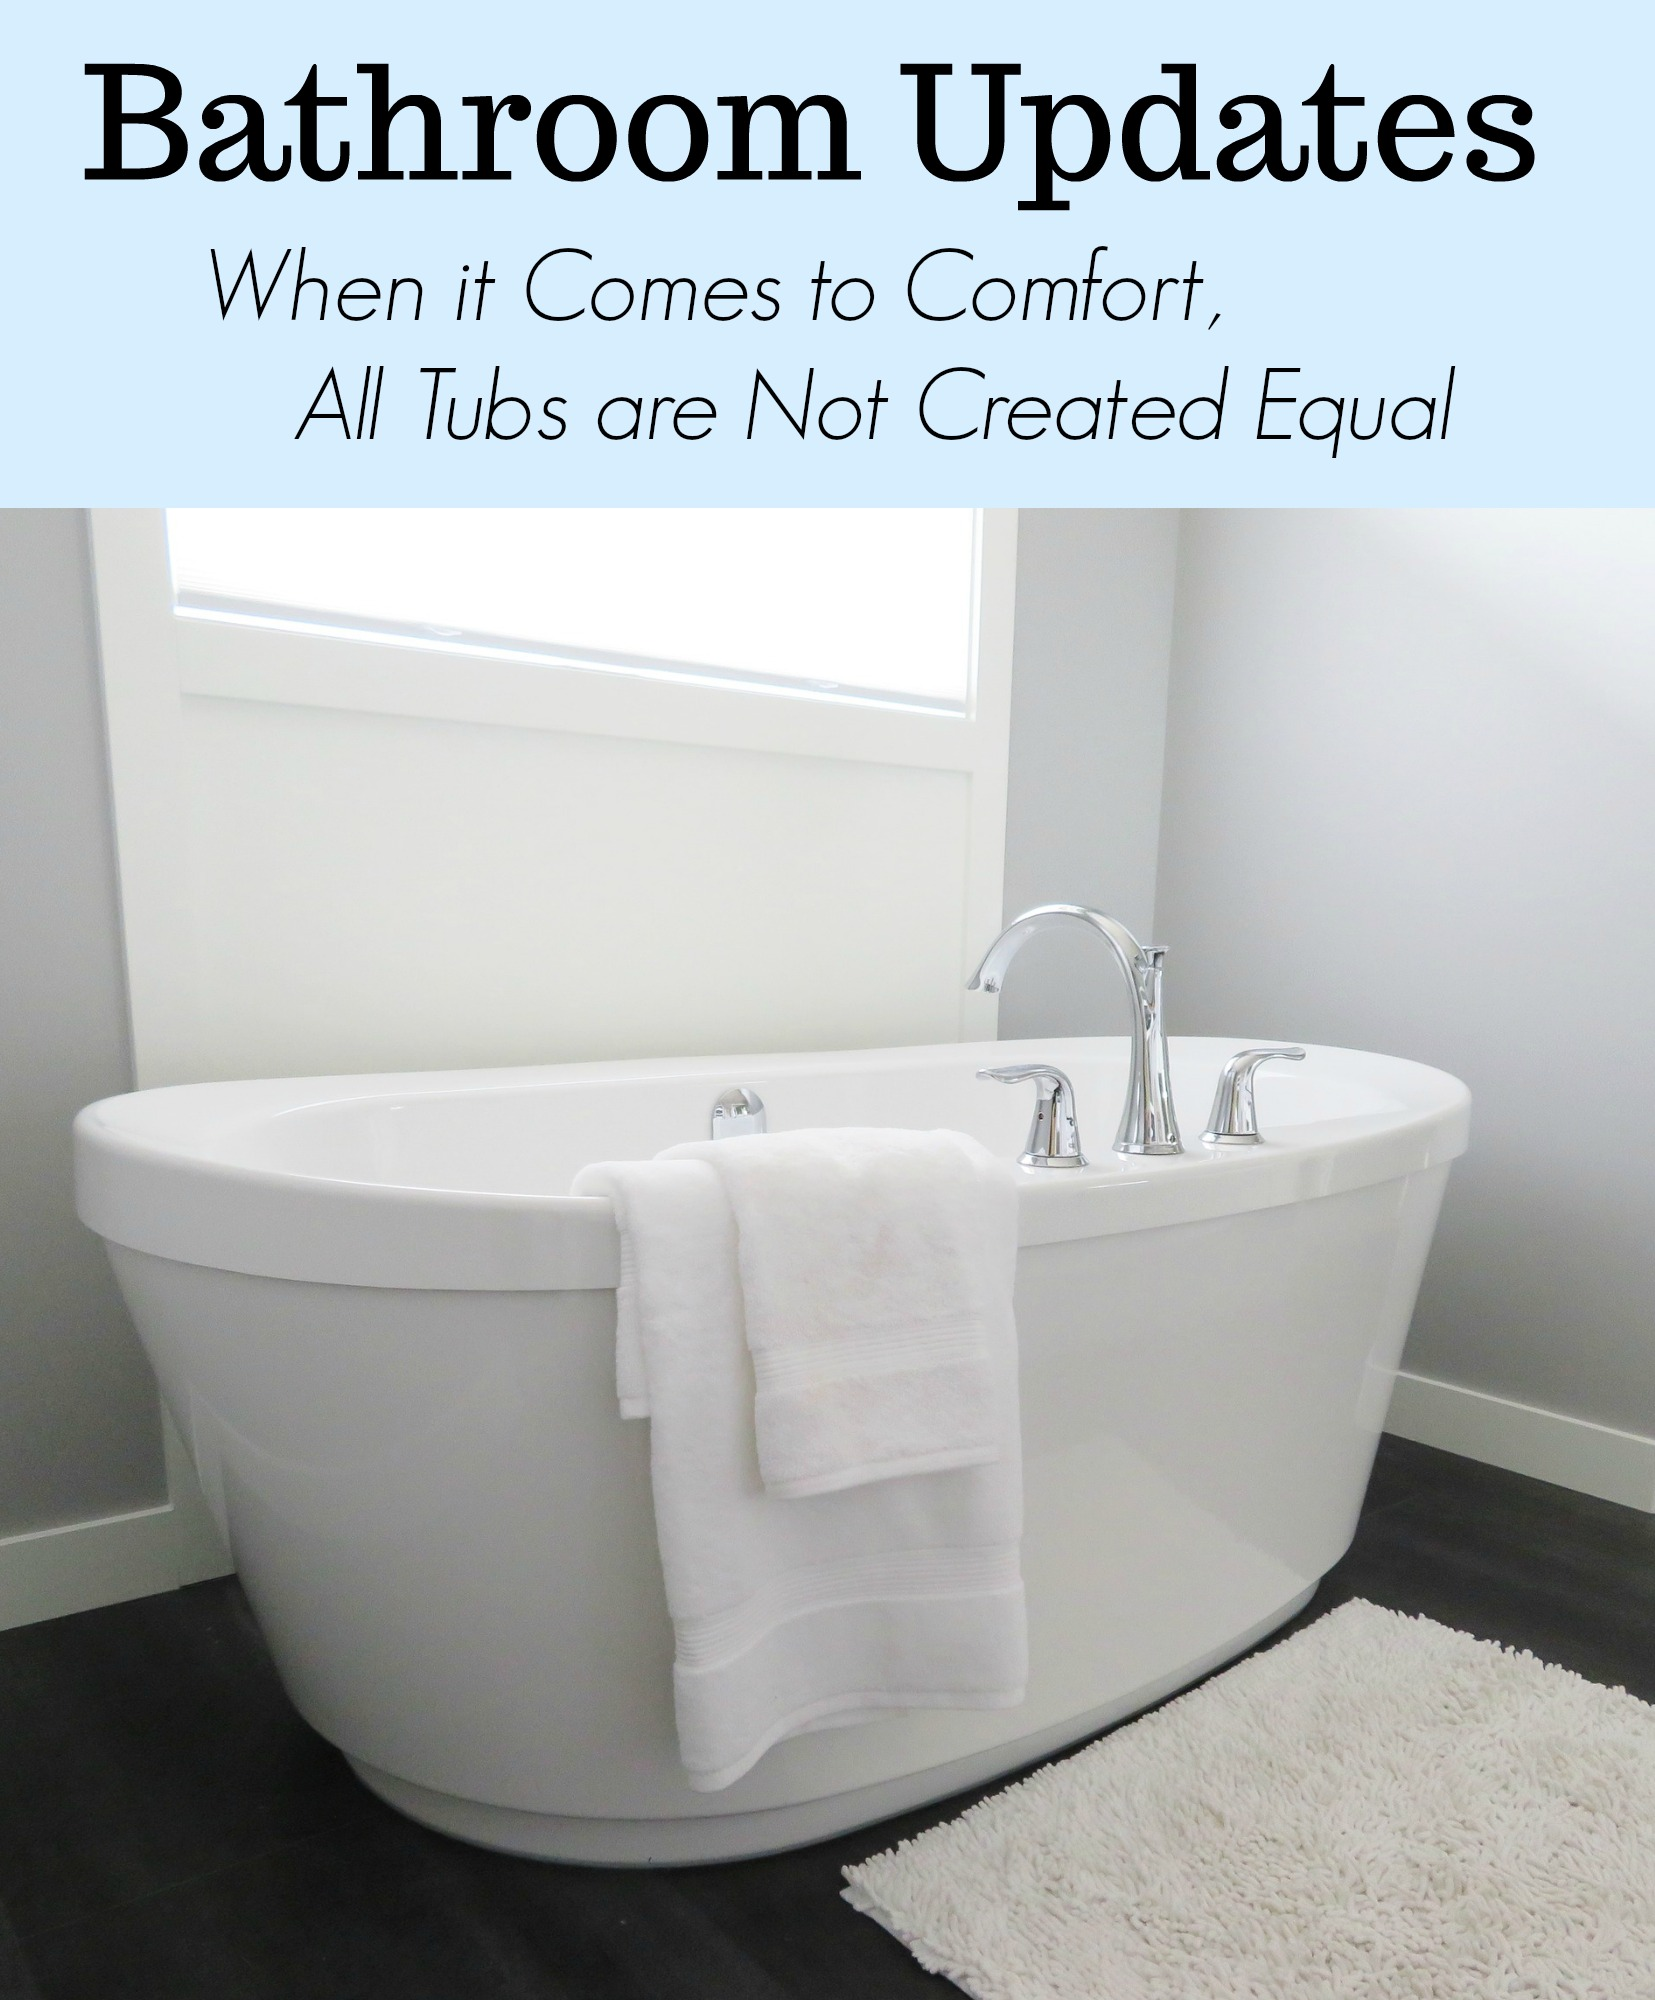 Bathroom Updates: When it Comes to Comfort, All Tubs are Not Created ...